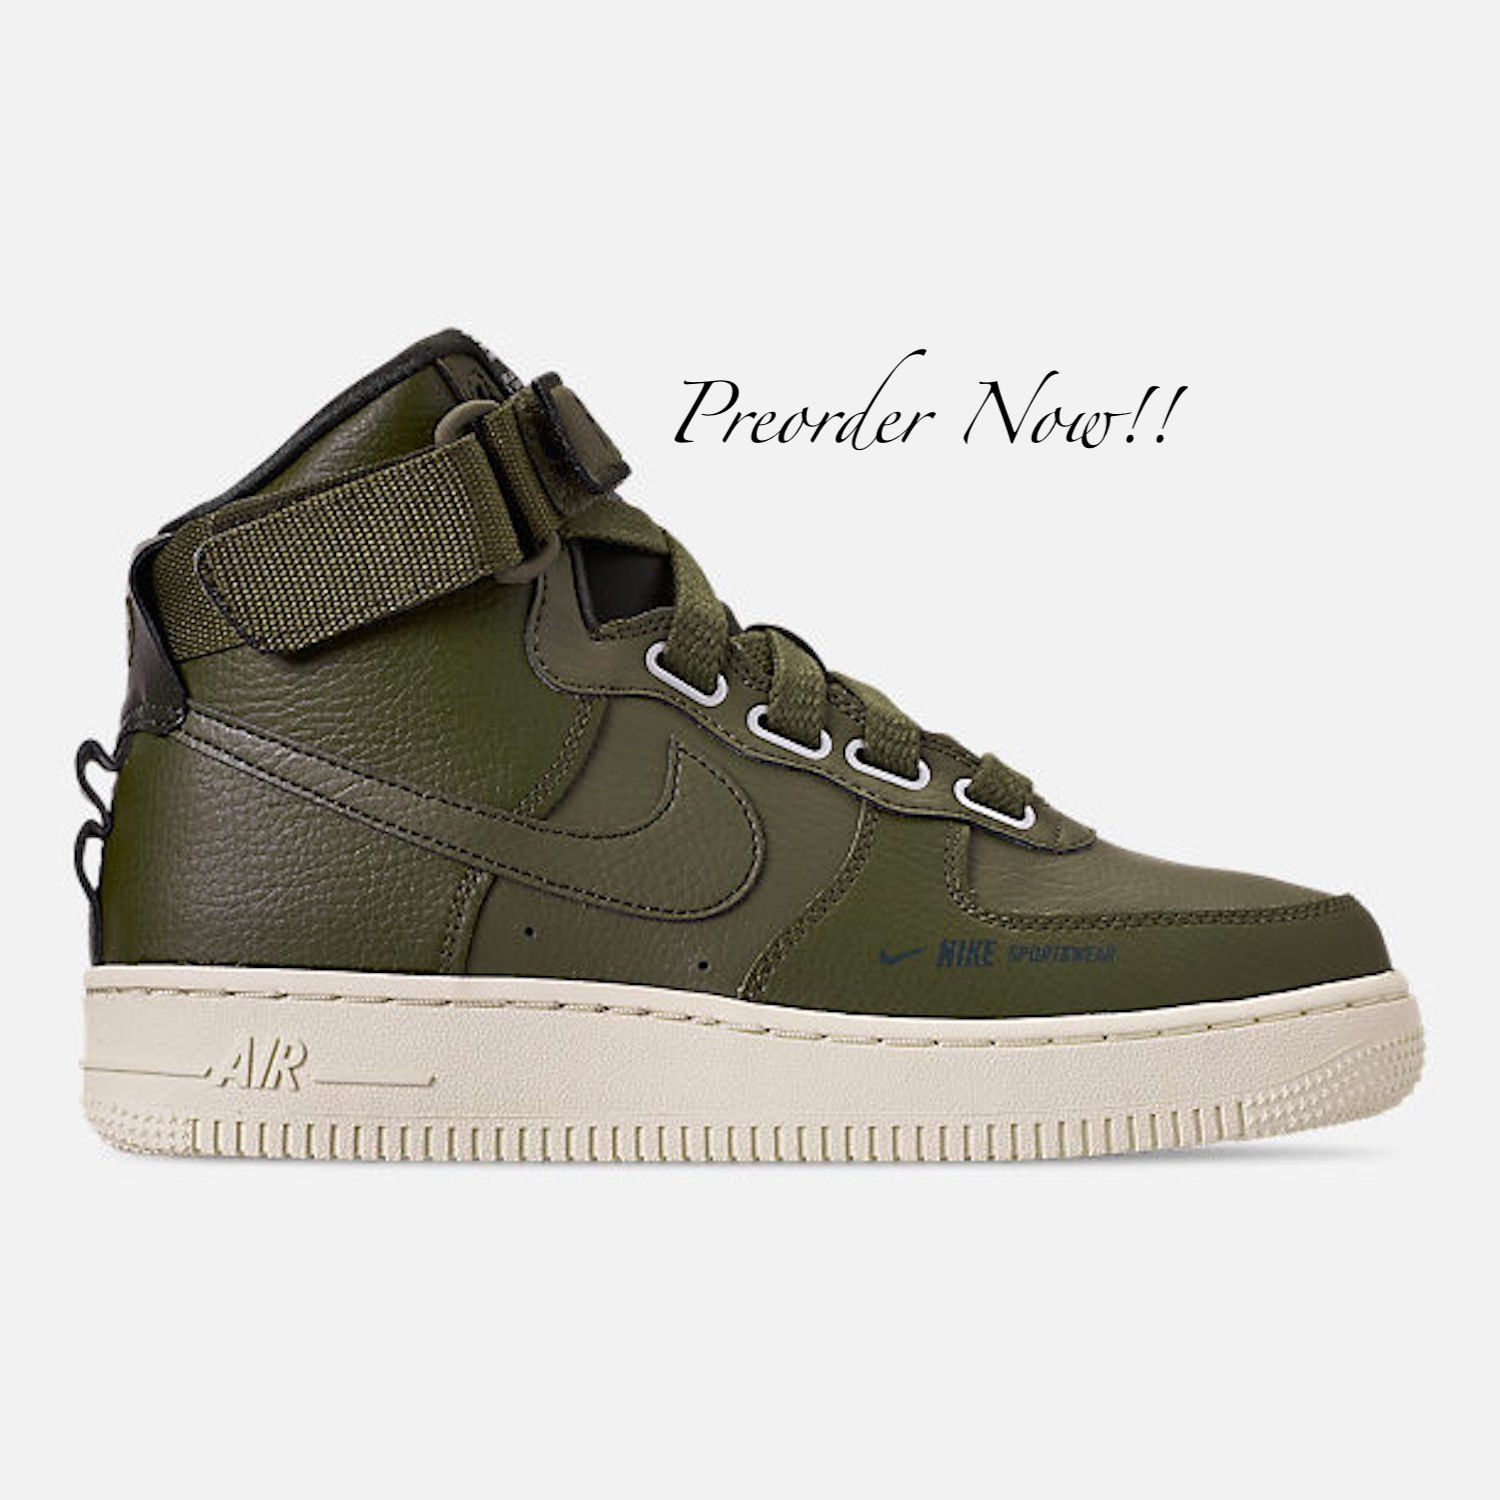 3f3c47356312d Swarovski Women's Nike Air Force 1 High Olive Green Sneakers Blinged ...